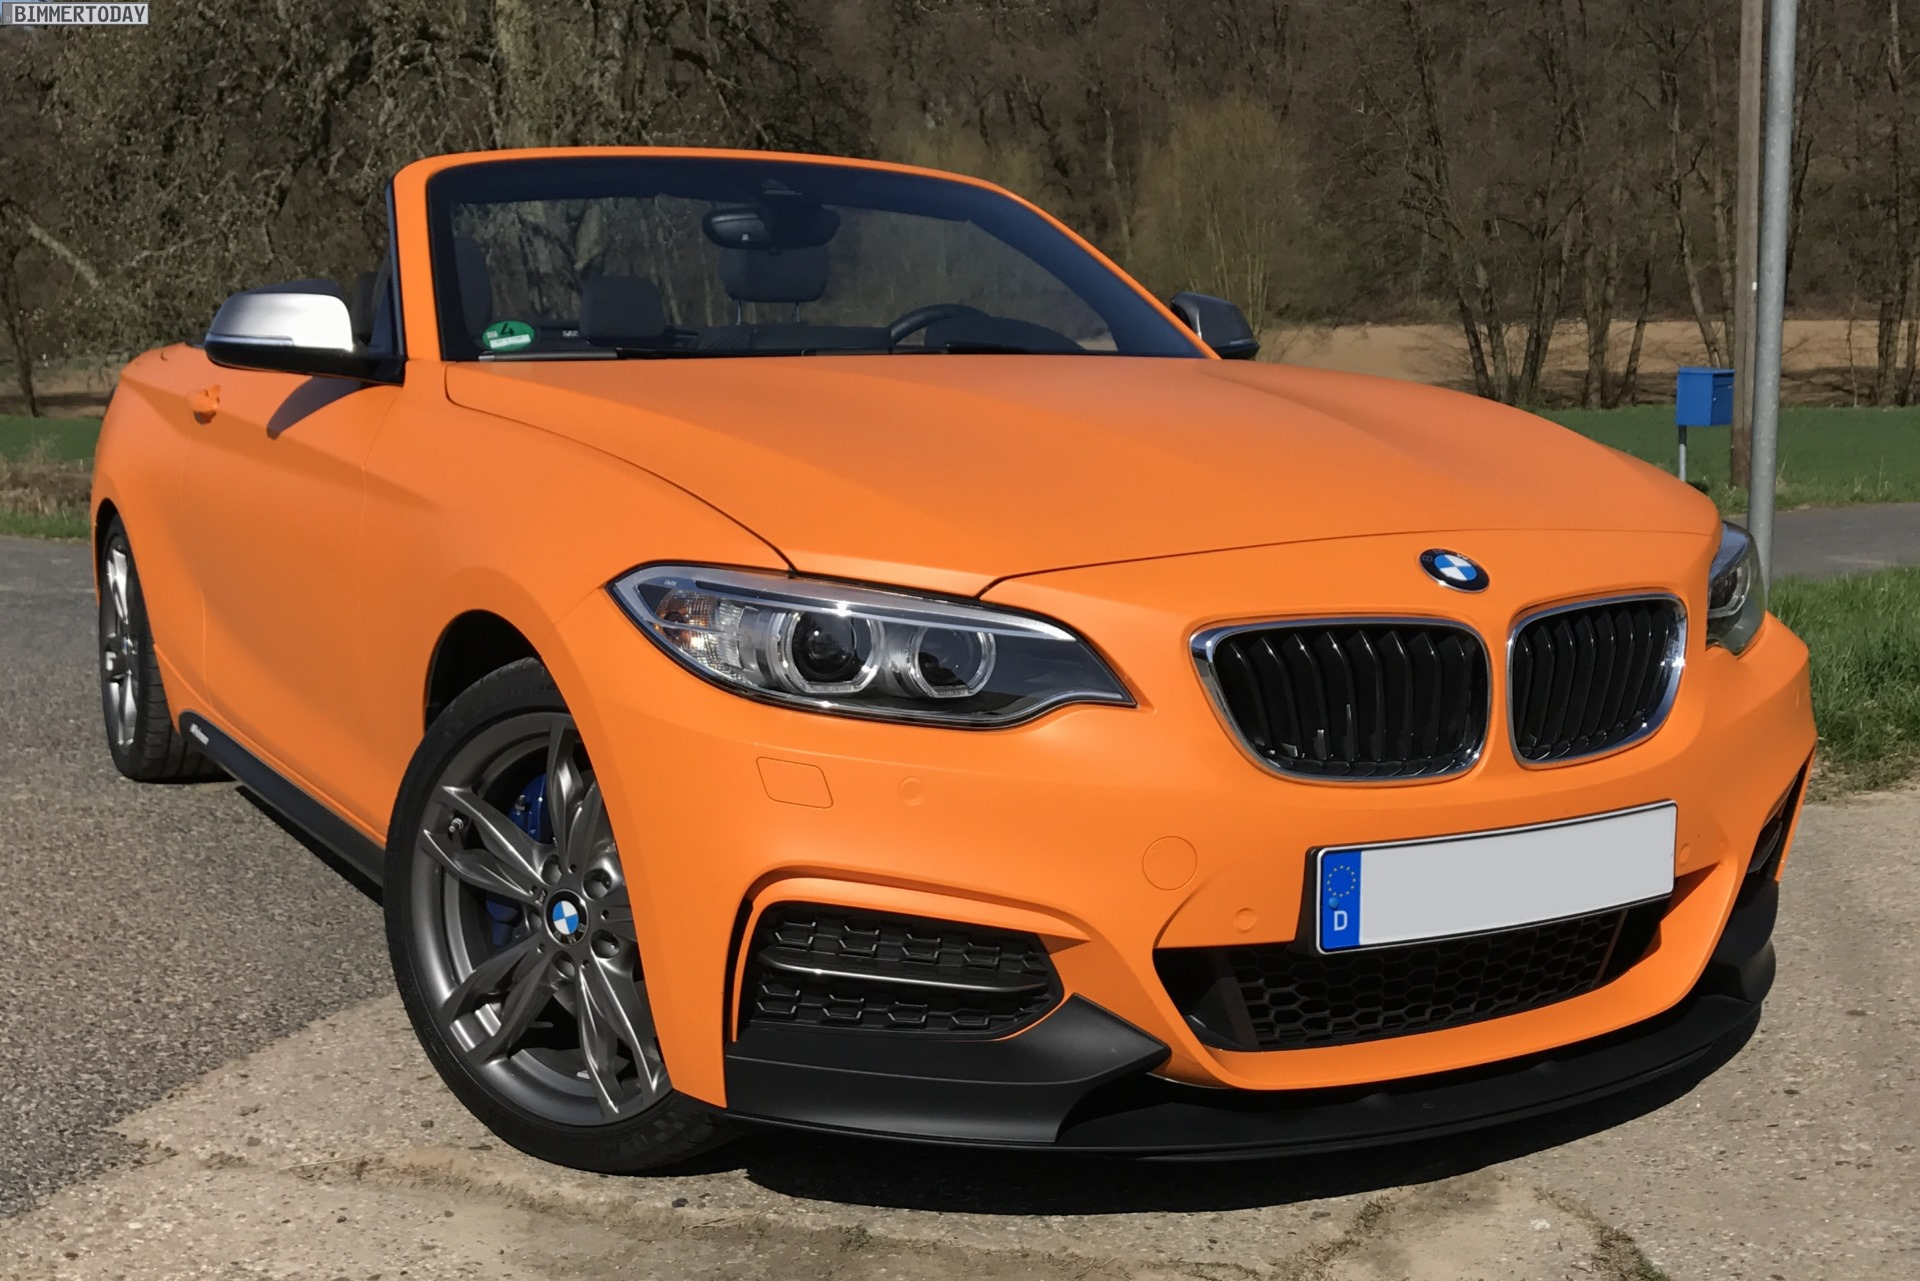 Bmw M240i Convertible In Fire Orange Gets Performance Upgrades